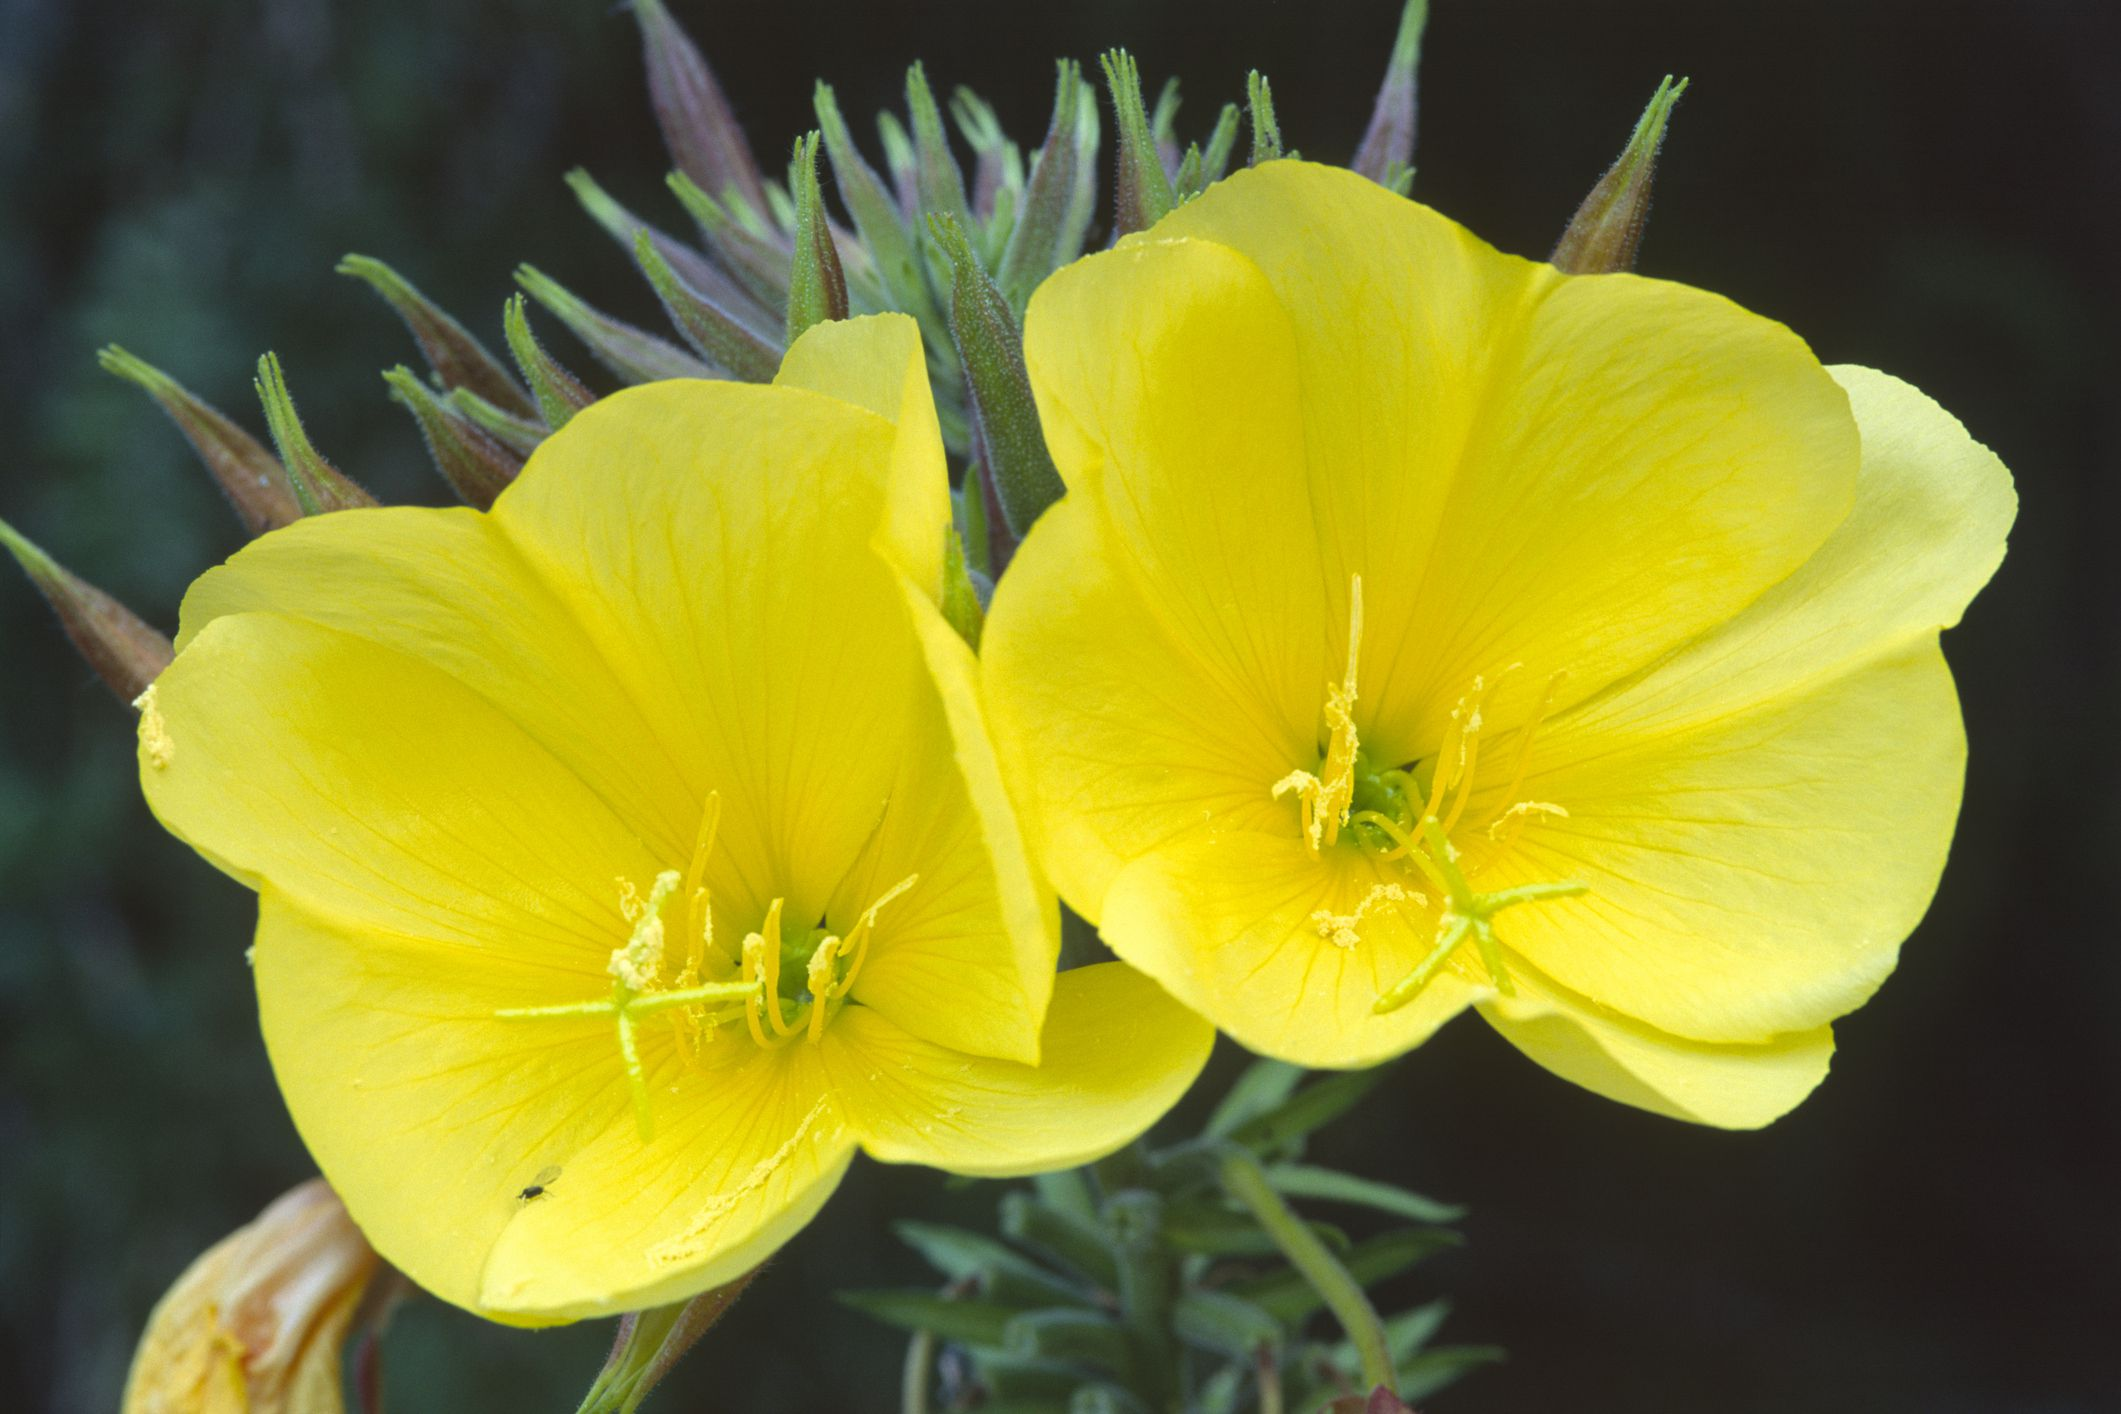 Evening Primrose Oil Benefits And Uses